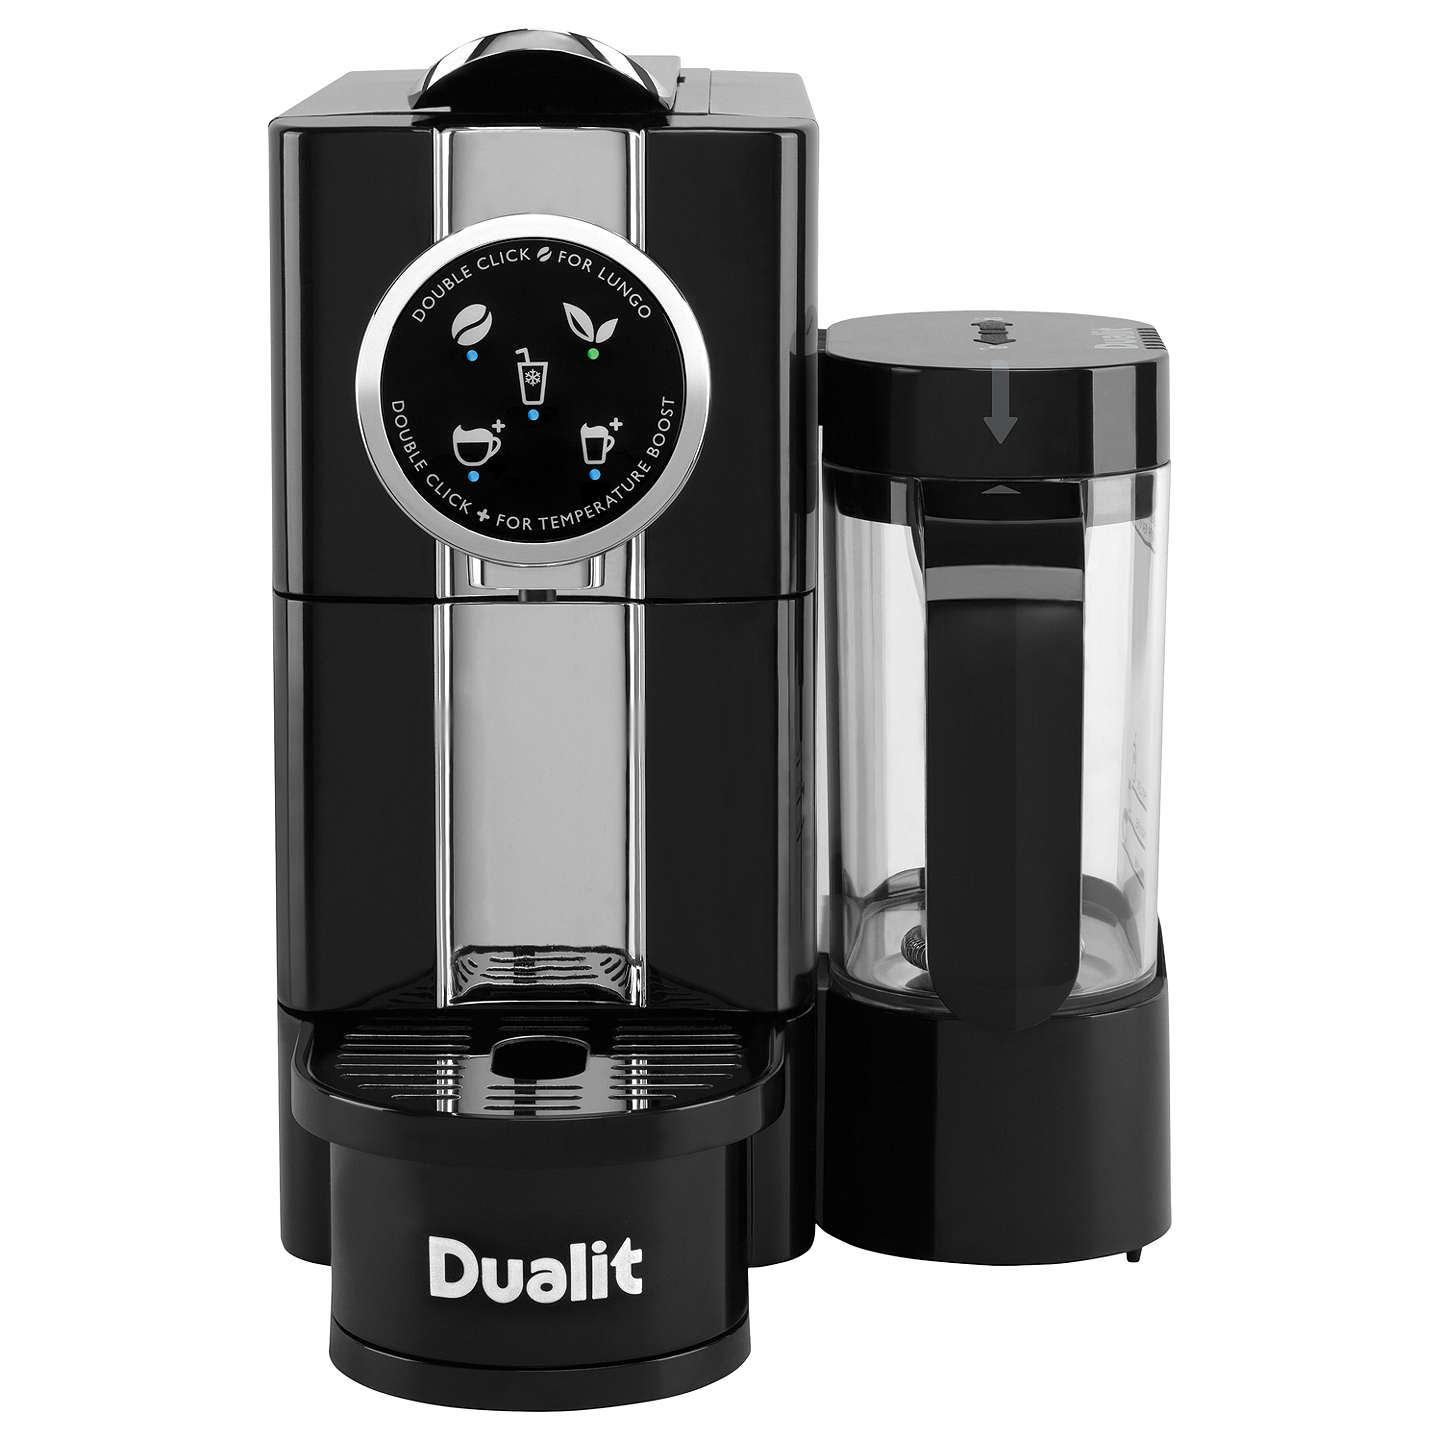 dualit 85180 cafe cino coffee capsule machine black at john lewis. Black Bedroom Furniture Sets. Home Design Ideas